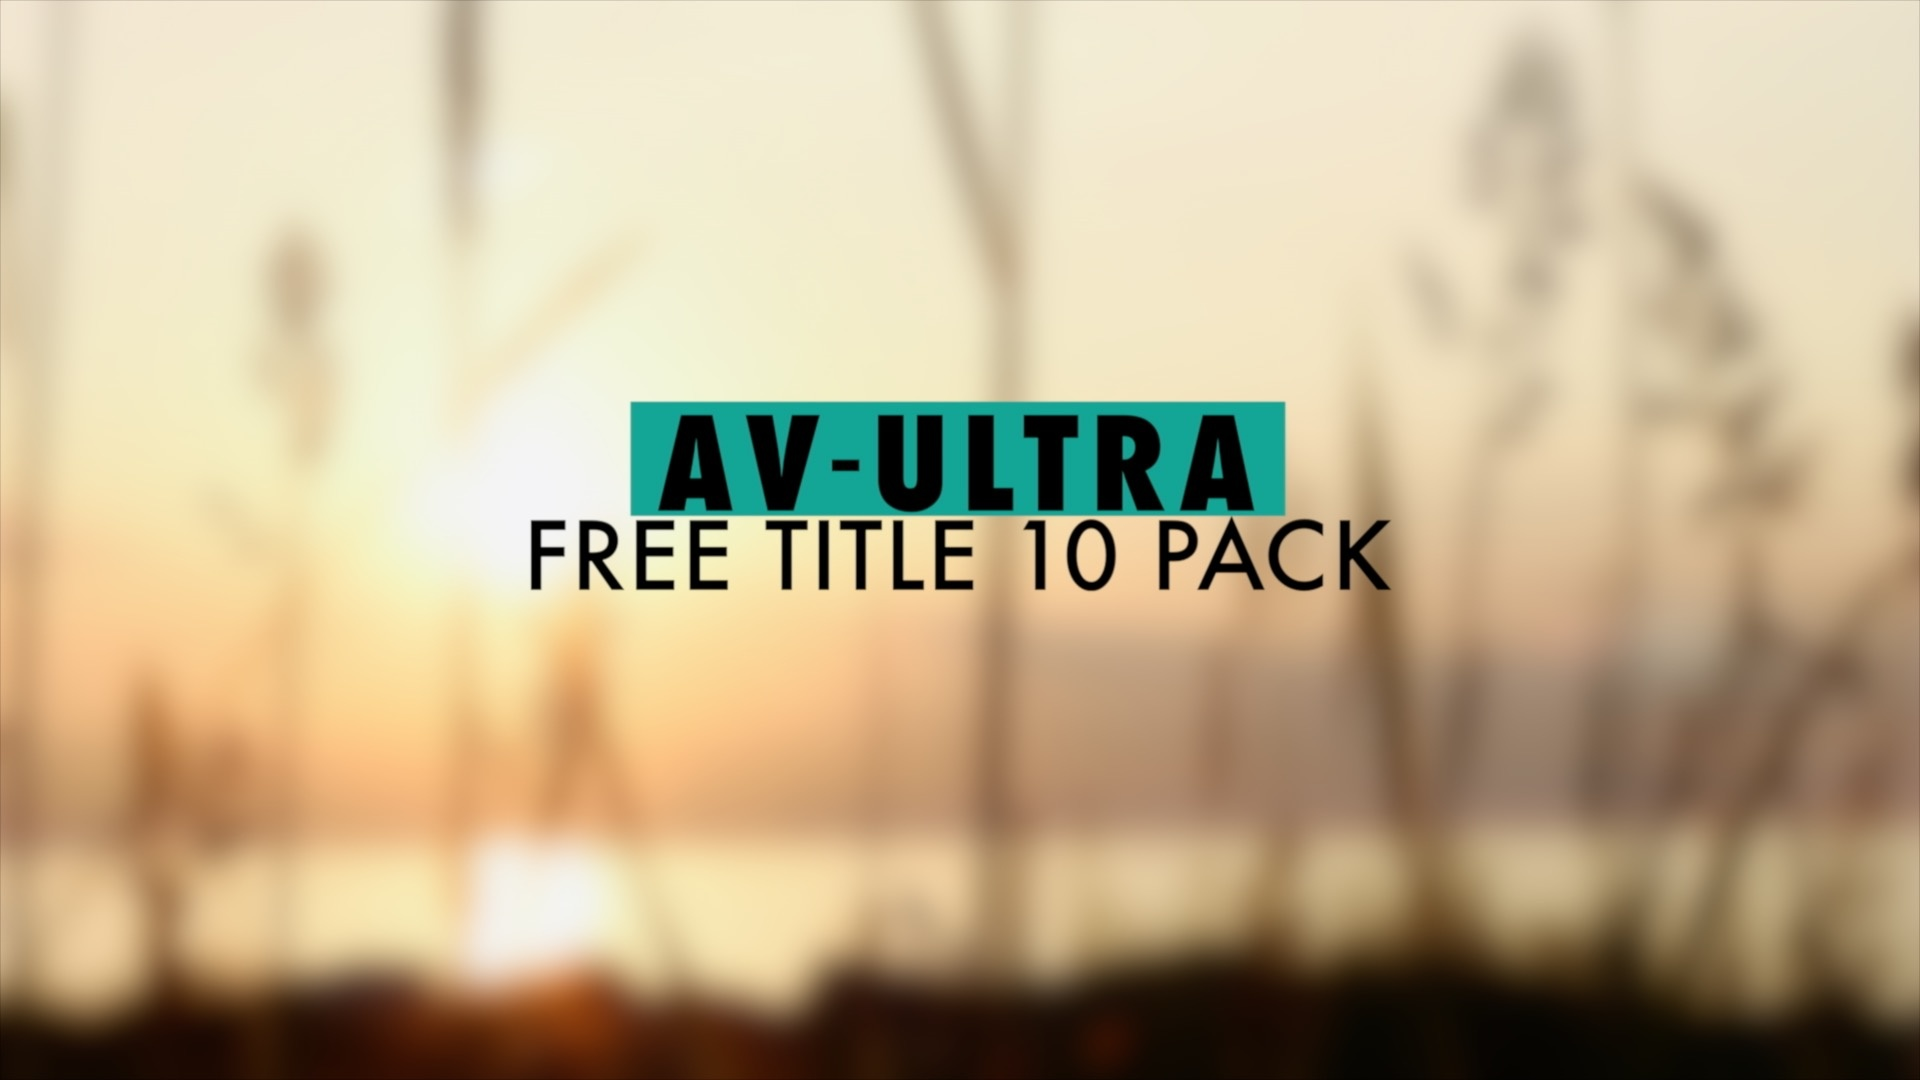 Free 10 Pack lower thirds and titles